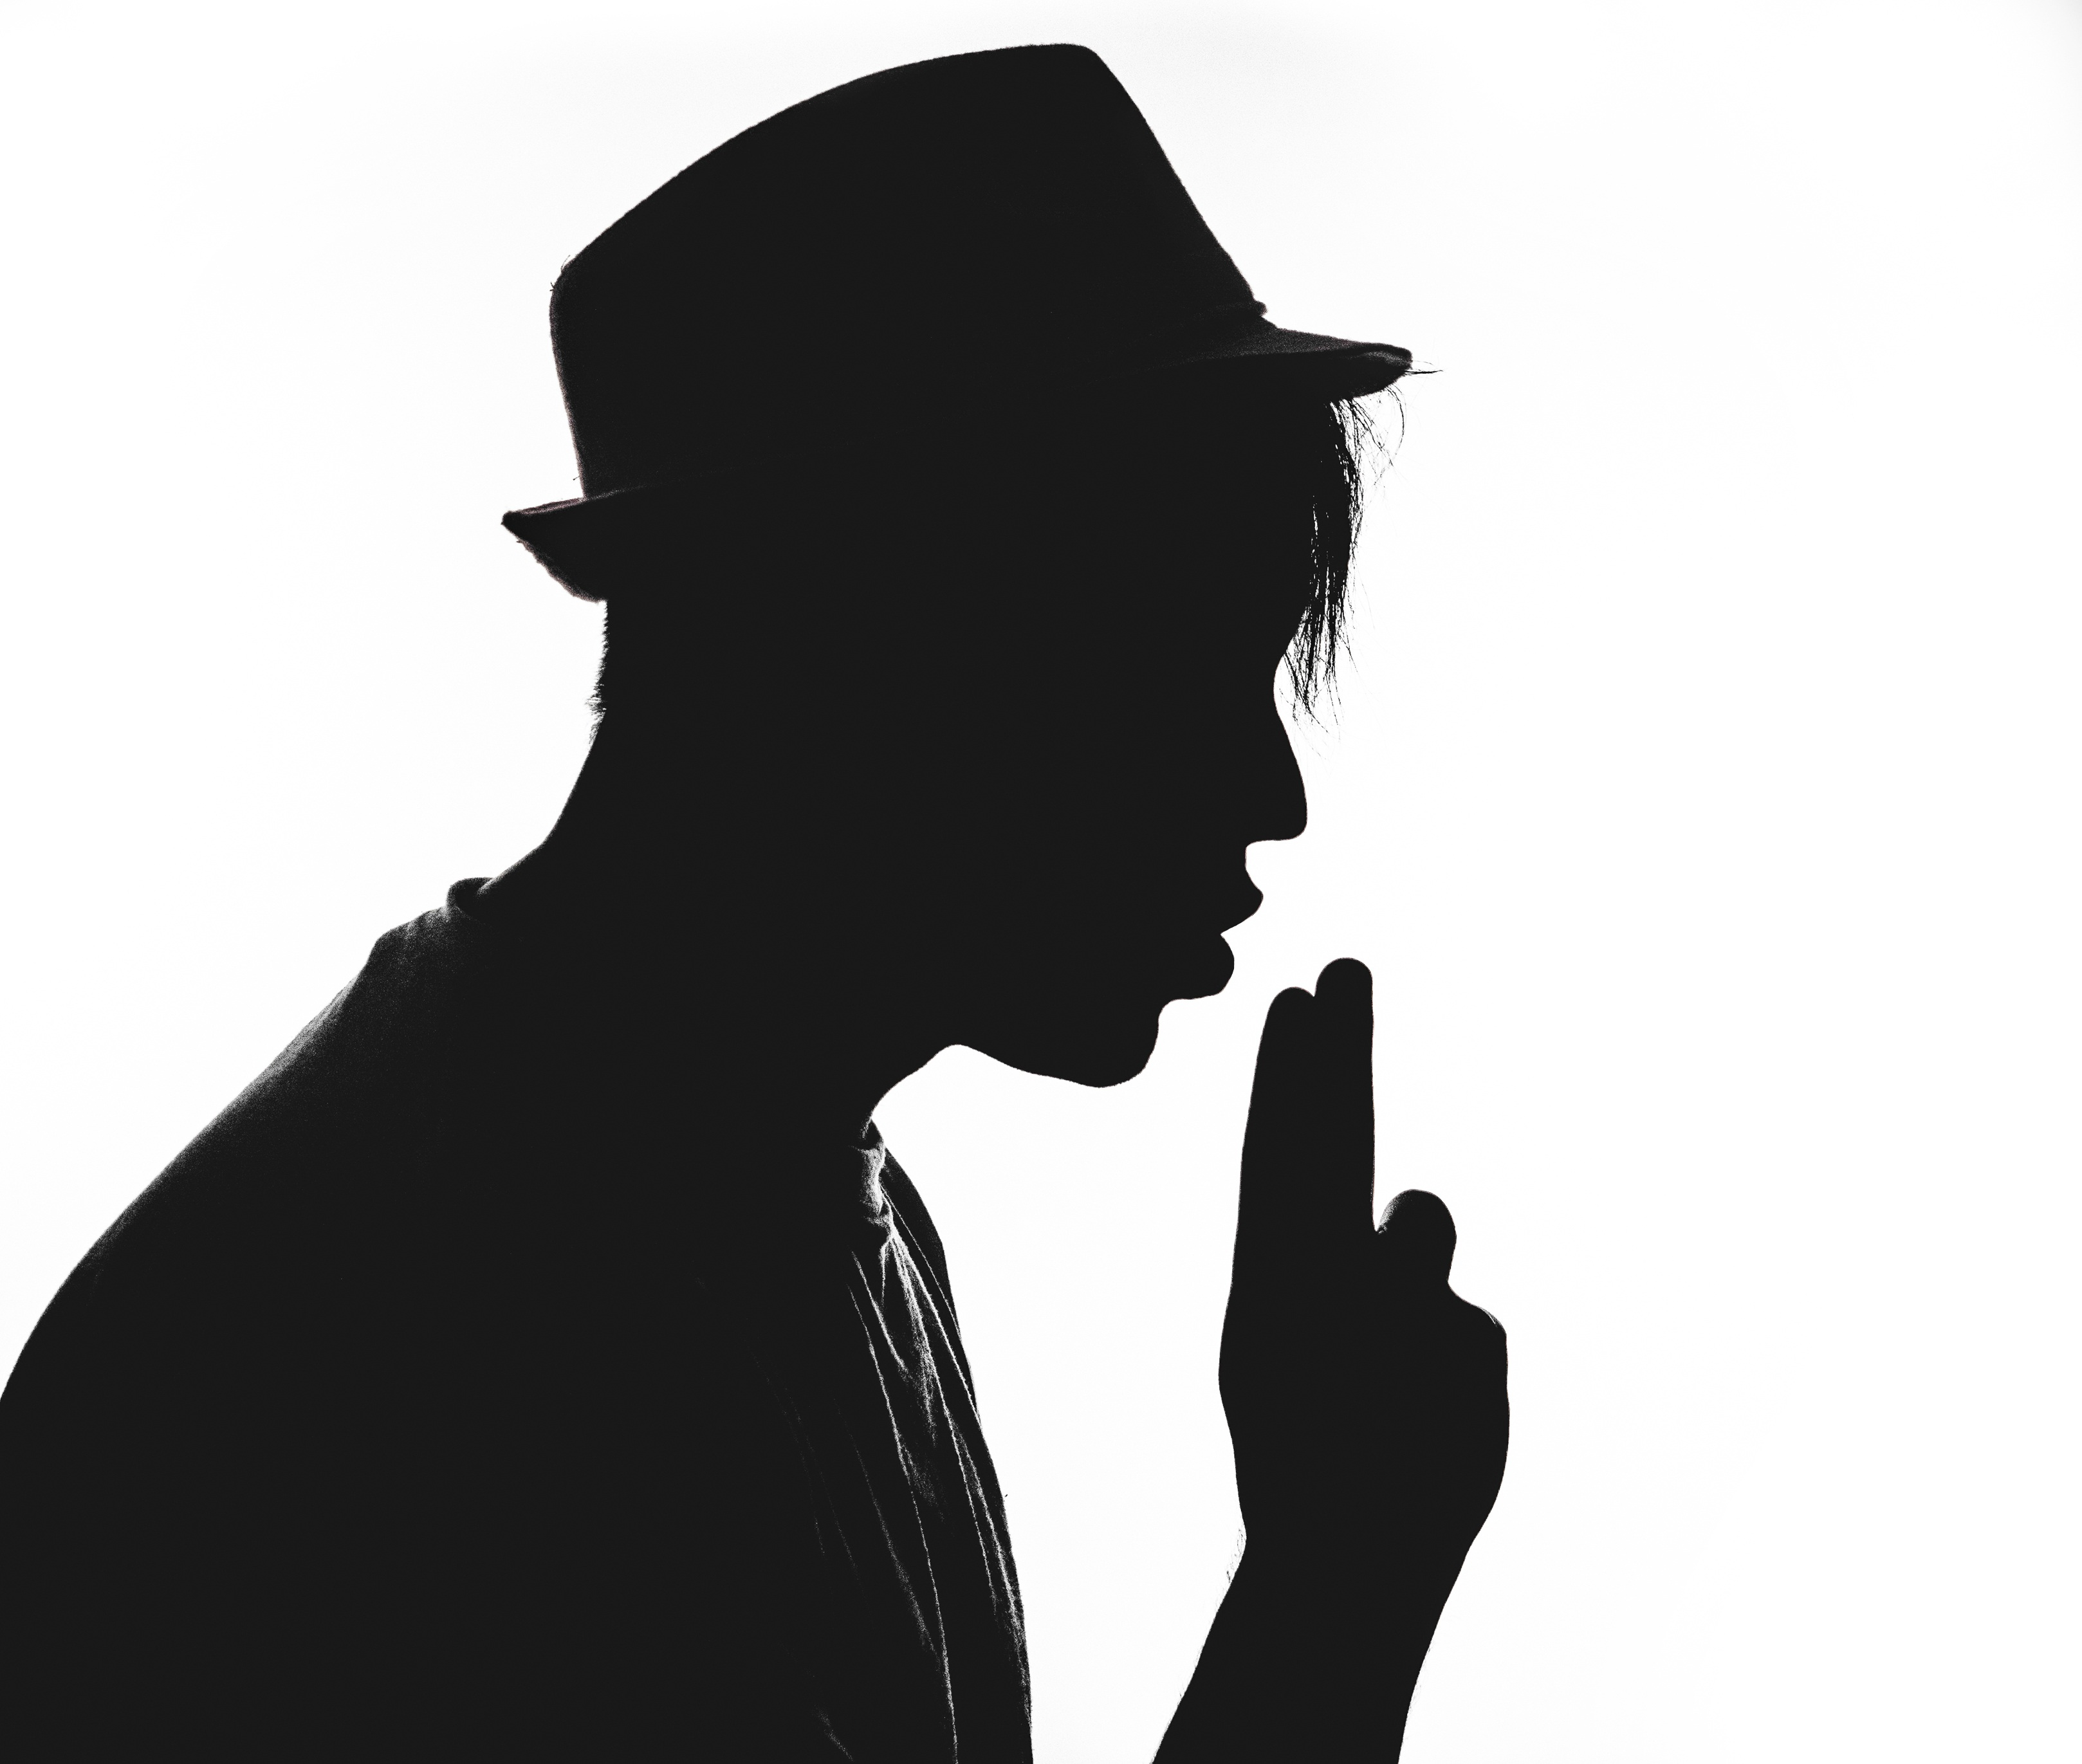 3236x2742 Free Images Hand, Man, Silhouette, Black And White, Hair, Smoke